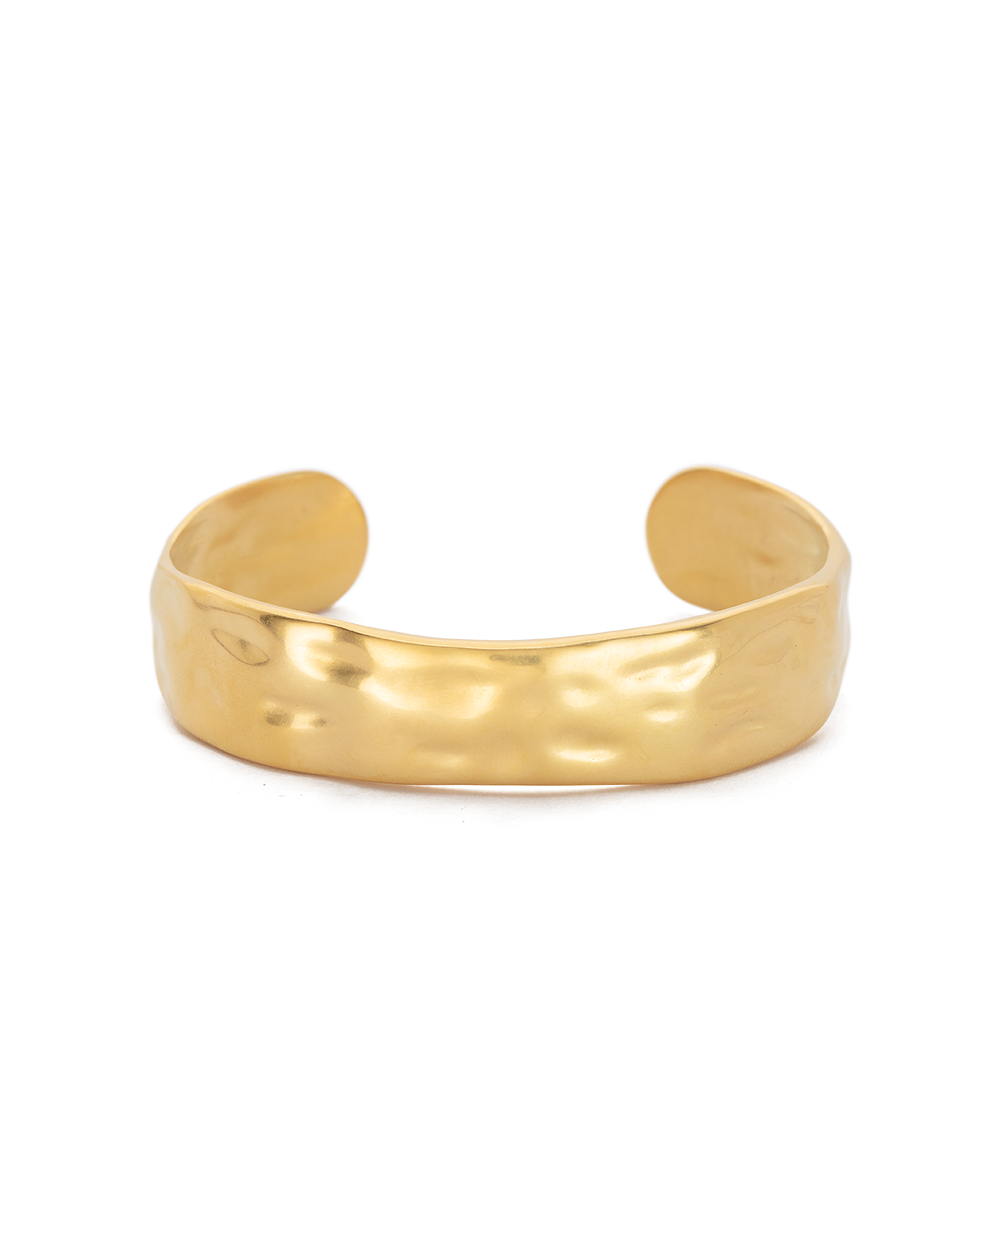 ELEMENTS CUFF MEDIUM (18K-GOLD-PLATED) - FRONT